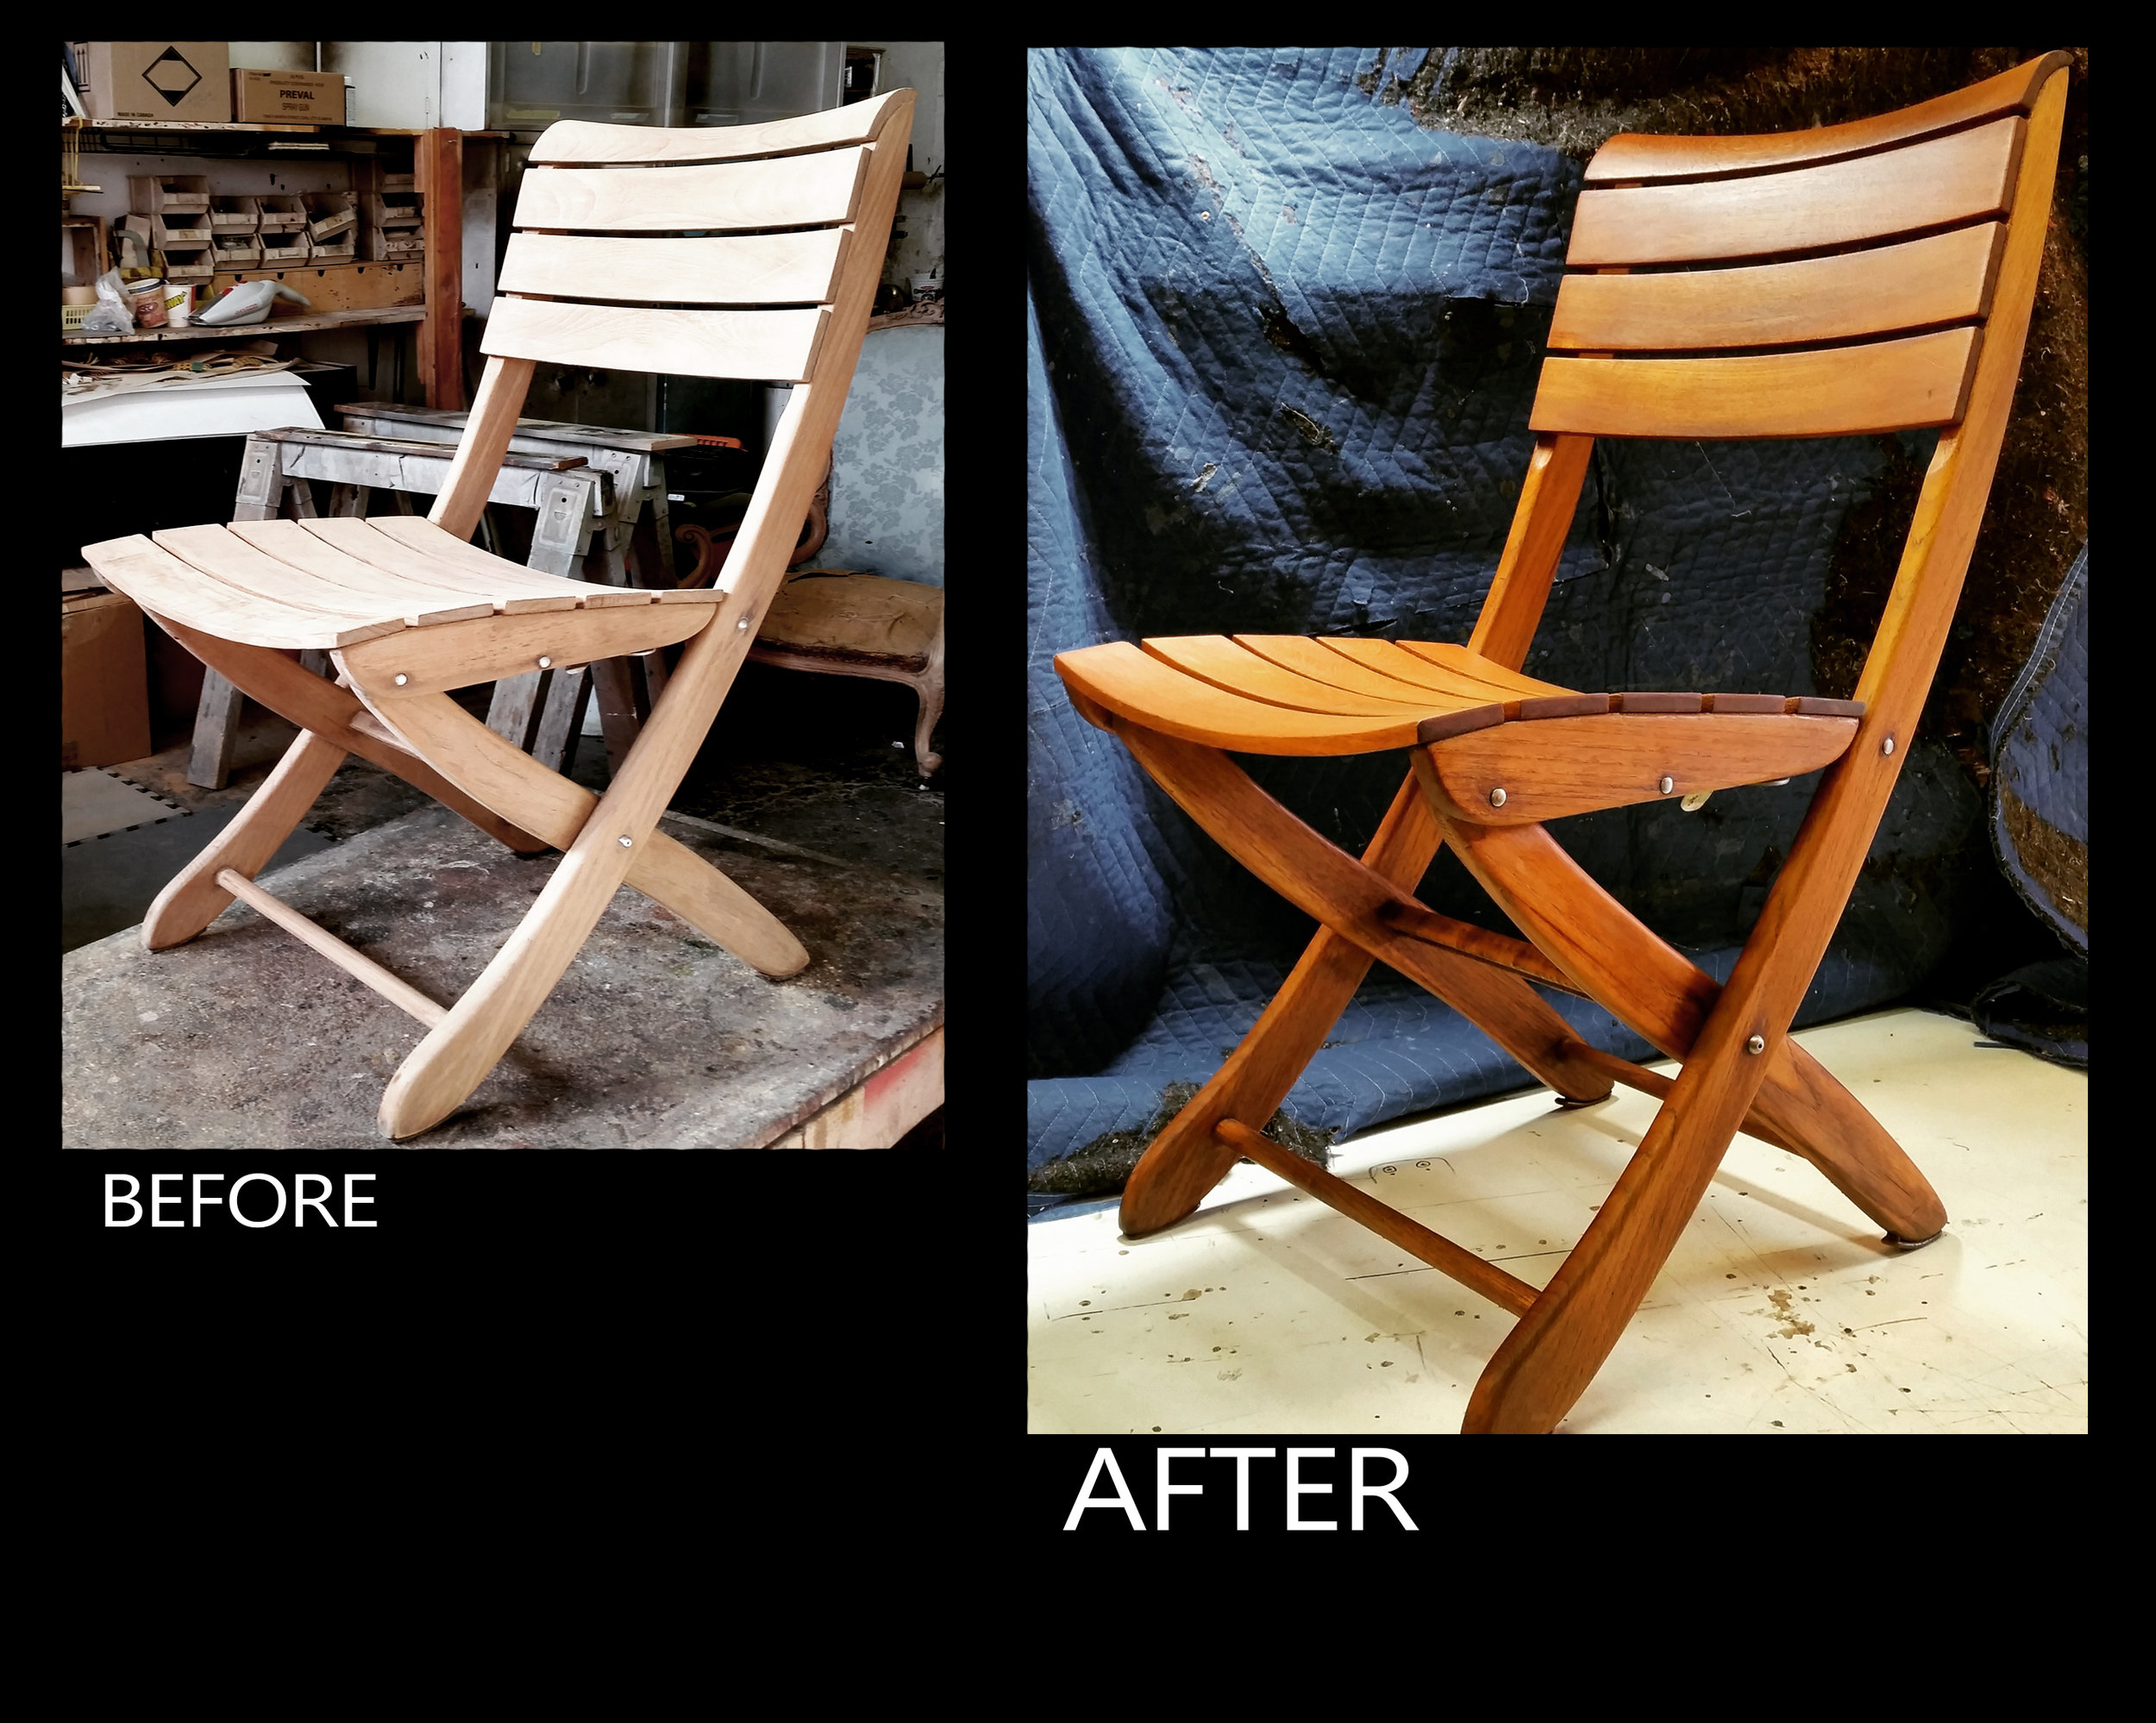 Teak folding chairs before and after oiling.